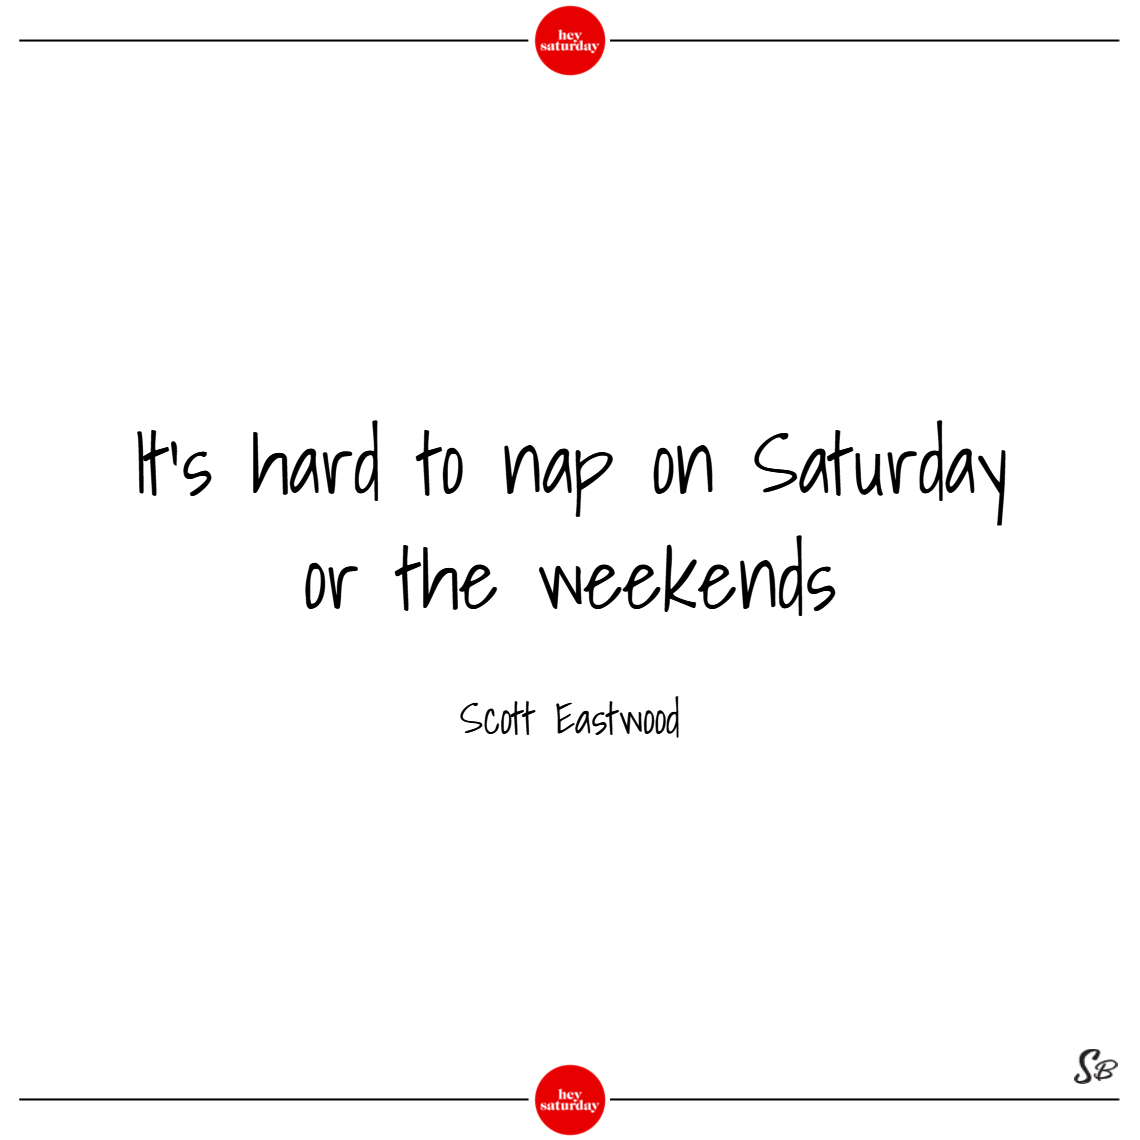 It's hard to nap on saturday or the weekends. – scott eastwood